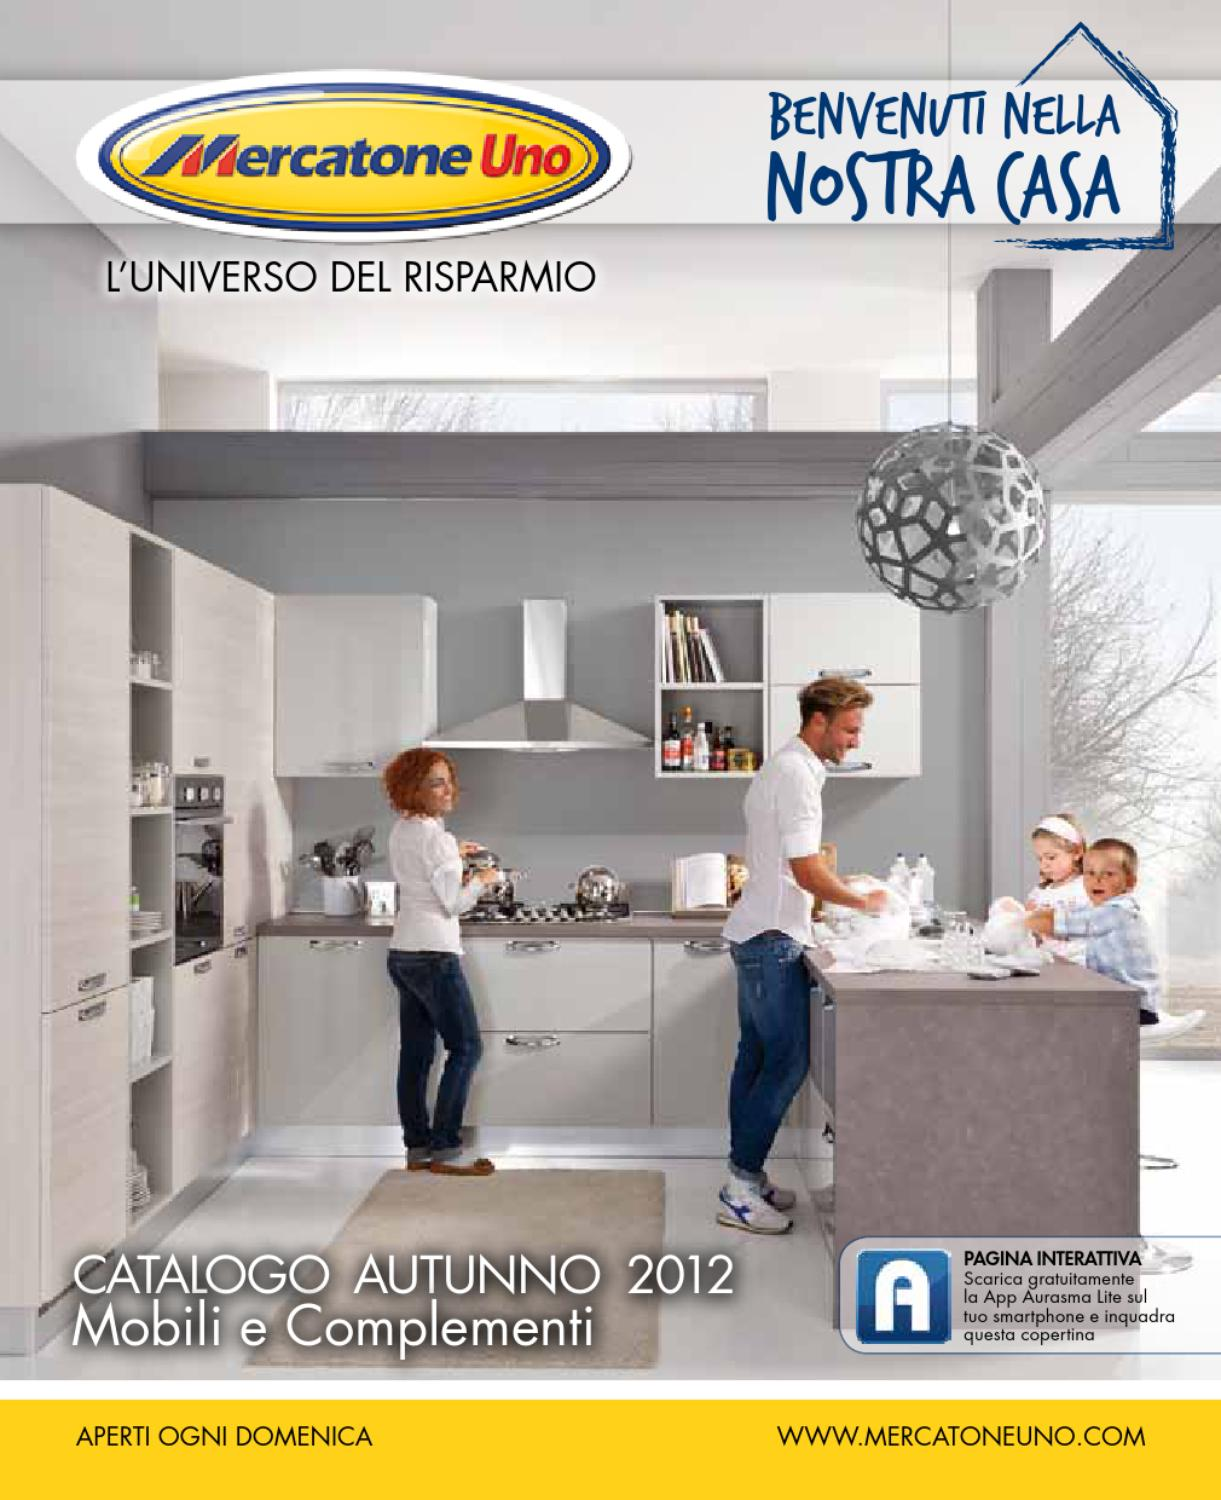 Mercatone uno catalogo autunno 2012 by issuu - Mercatone uno catalogo cucine ...